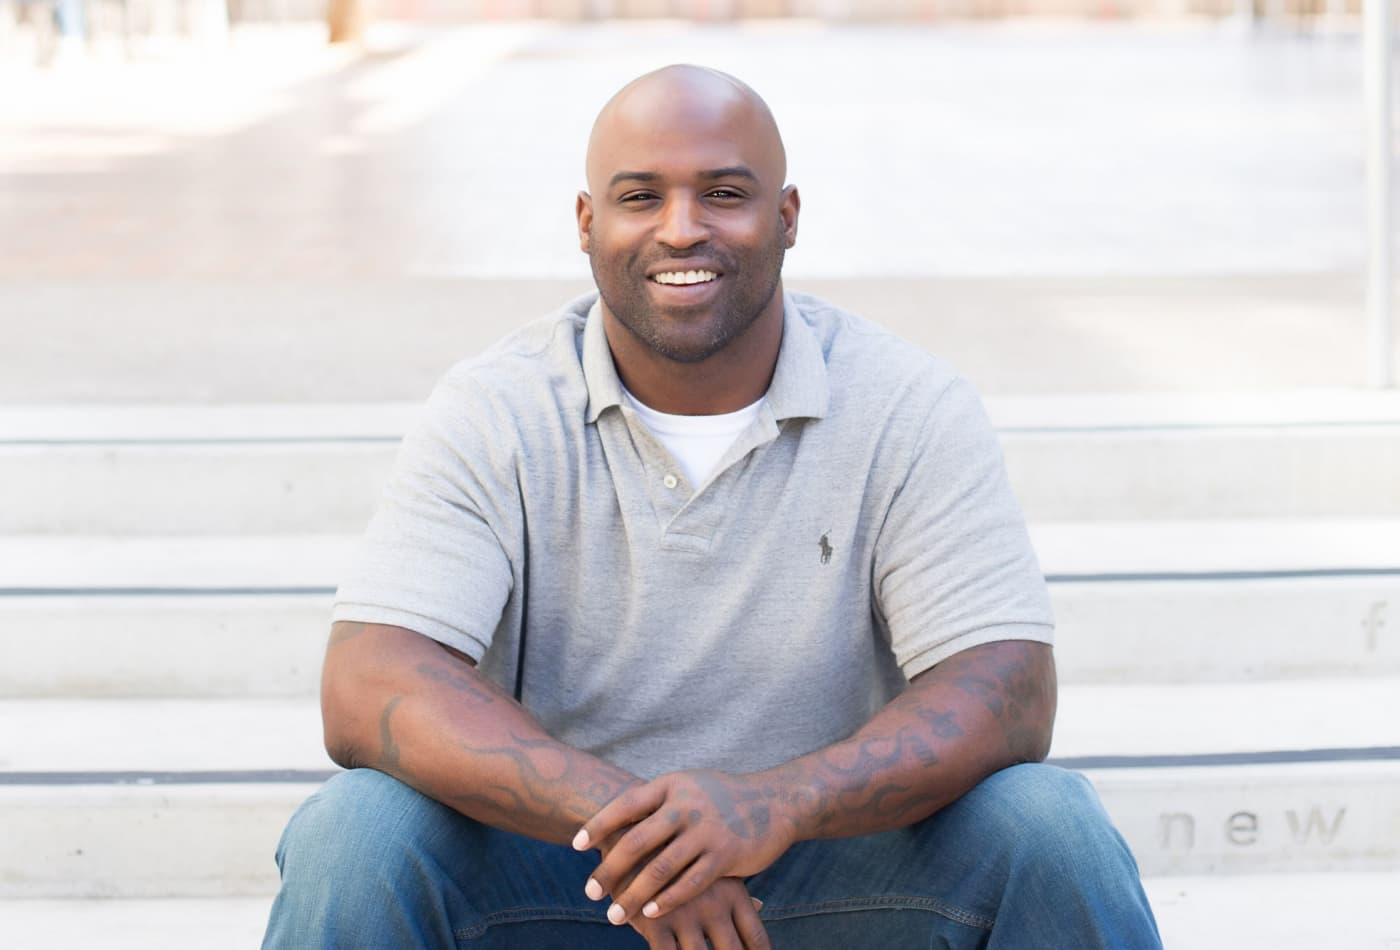 Ex-NFL player Ricky Williams launches Real Wellness cannabis